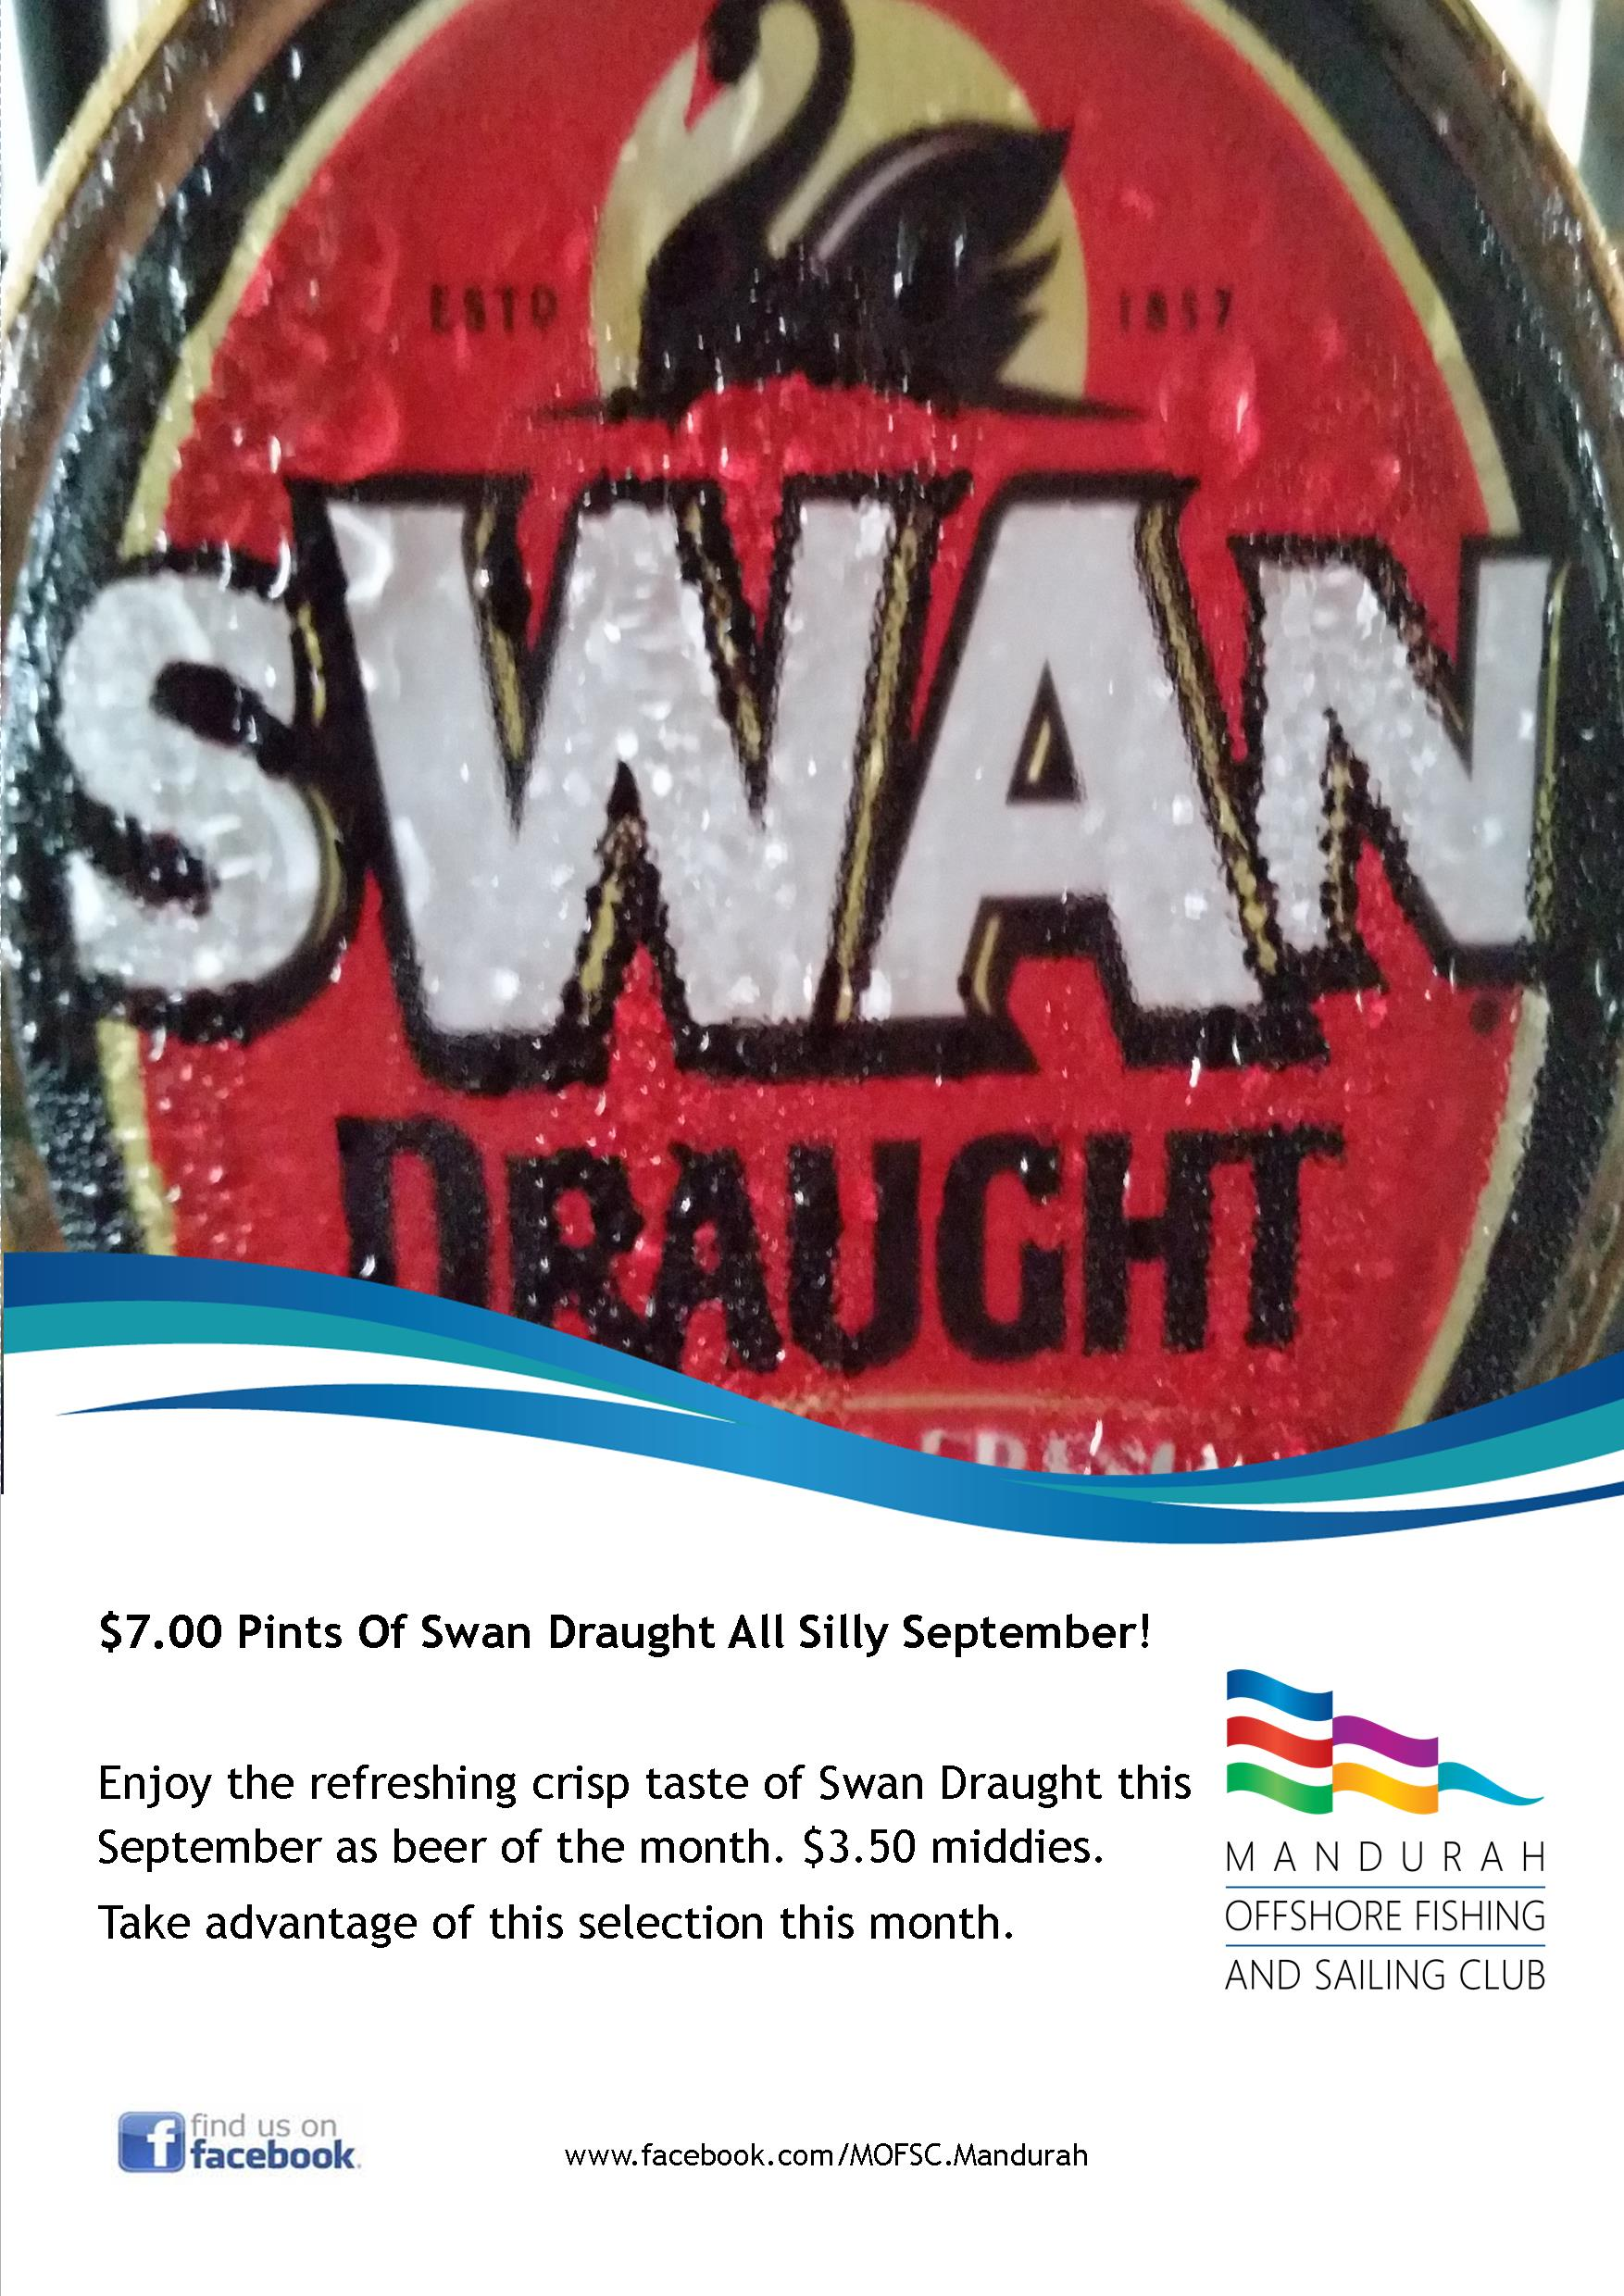 Swan Draught Silly September